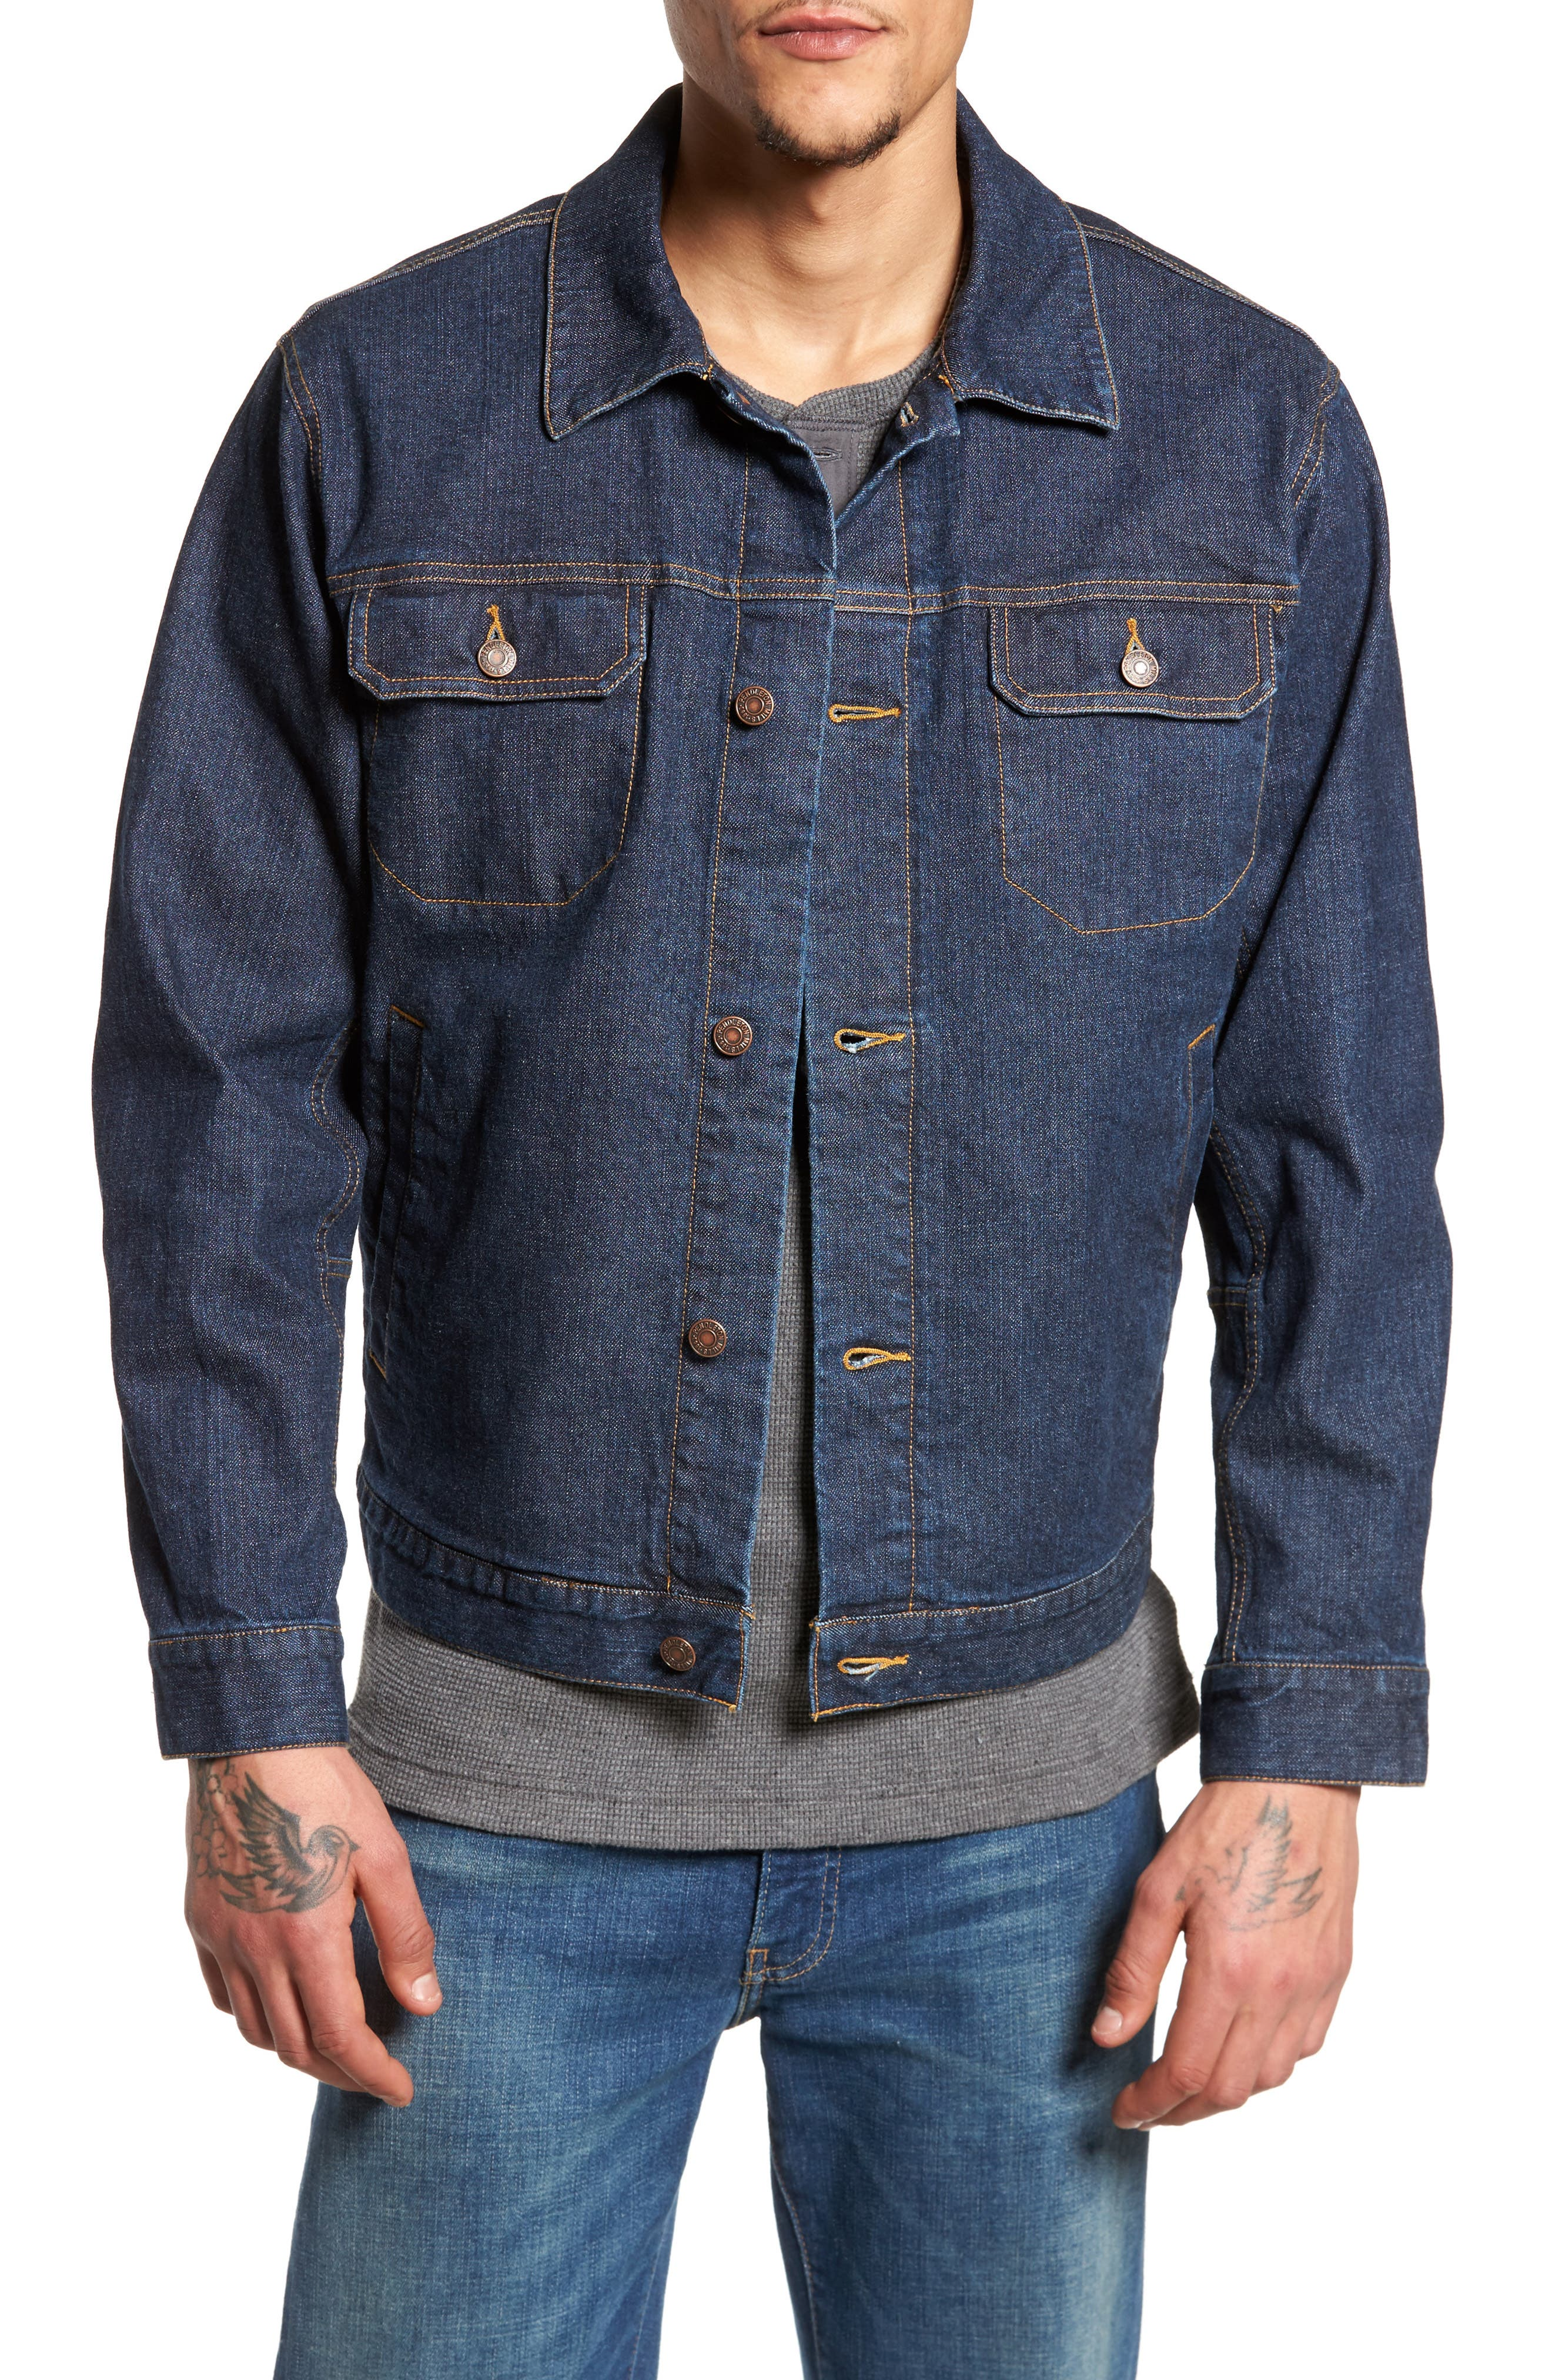 Denim Jacket with Removable Wool Vest,                         Main,                         color, Denim With Broken Arrow Red